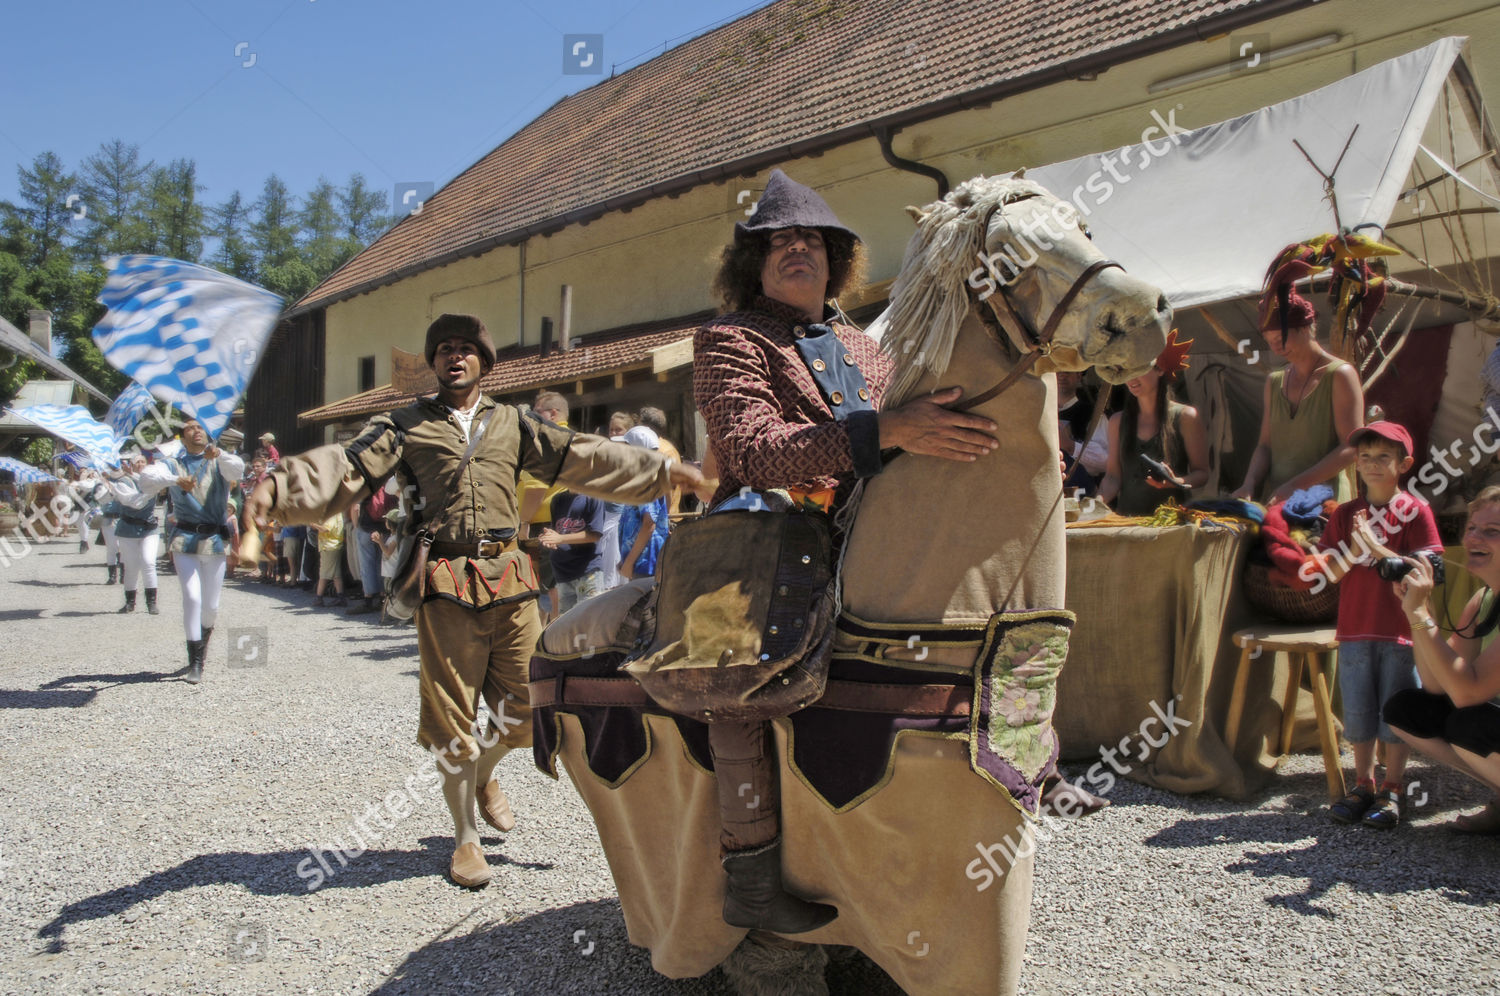 Man Mediaeval Medieval Costume Riding On Horse Editorial Stock Photo Stock Image Shutterstock